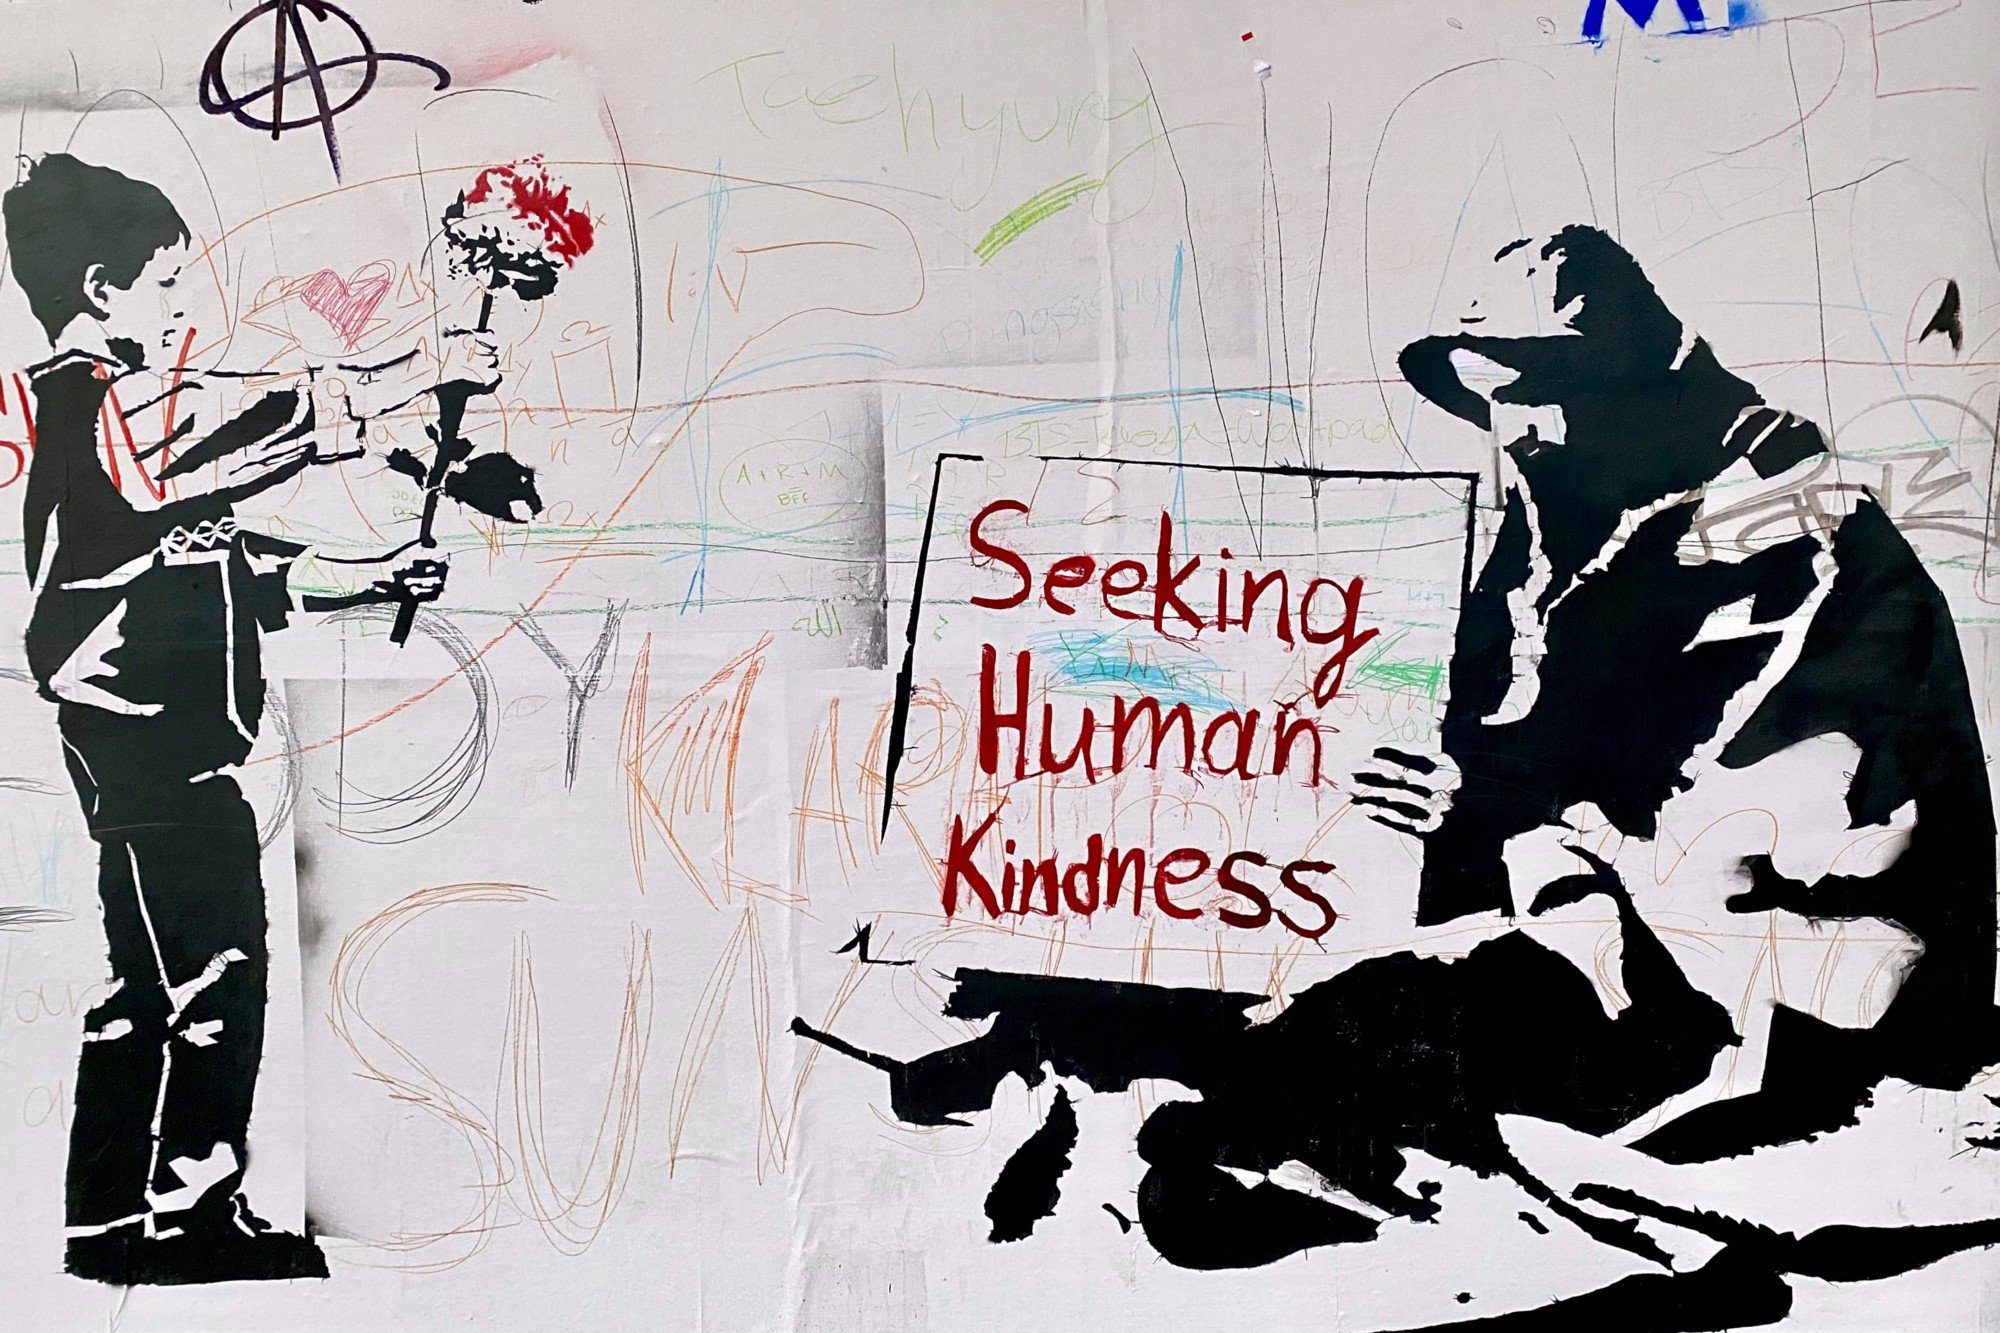 black and white wall art of boy offering flower to man with sign that reads 'seeking human kindness'